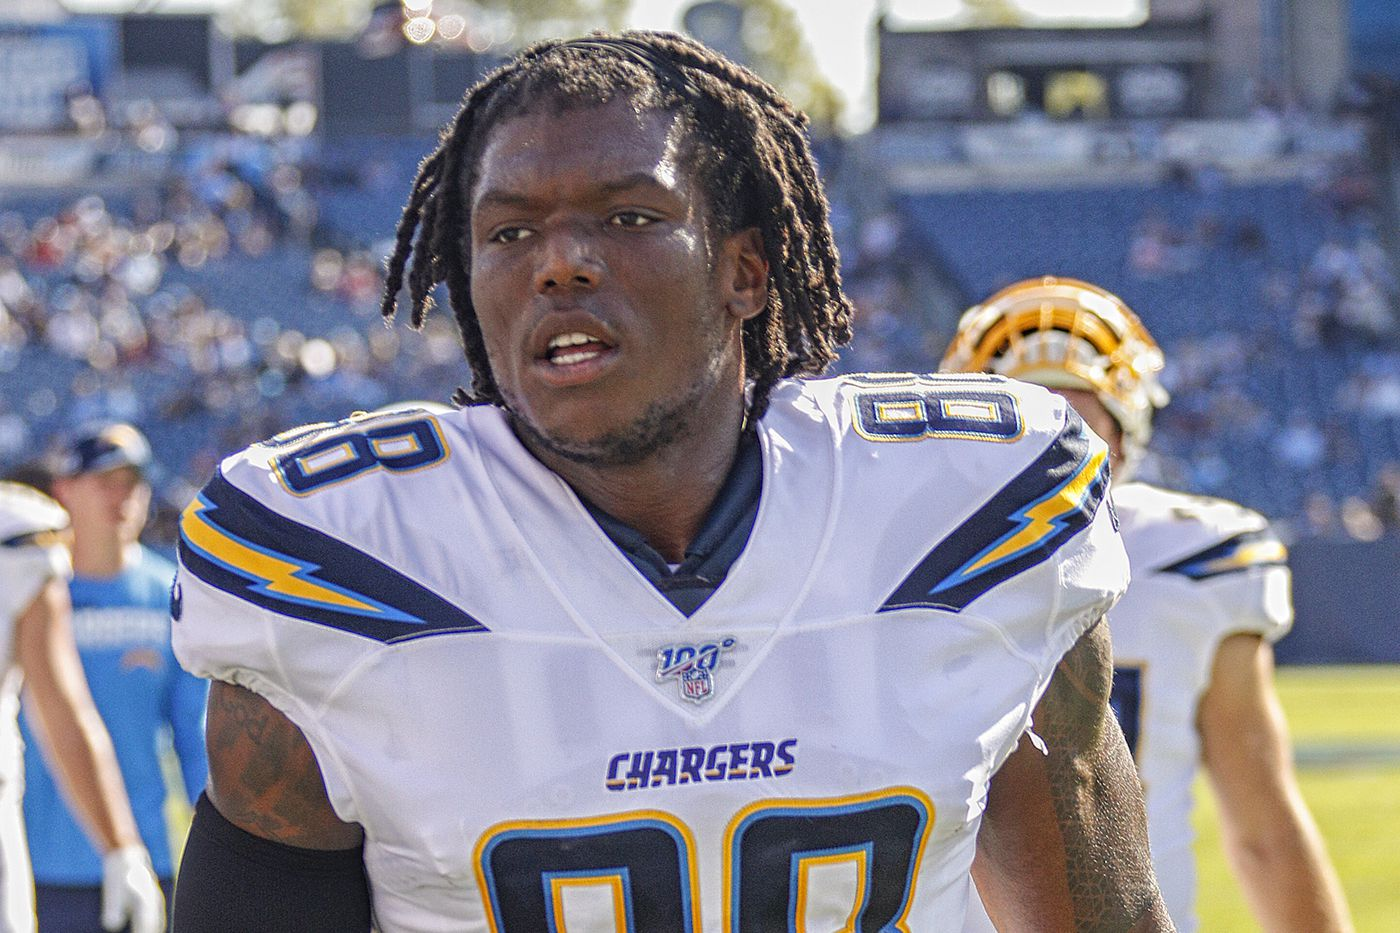 Chargers News: Should the Chargers cut Virgil Green? - Bolts From ...